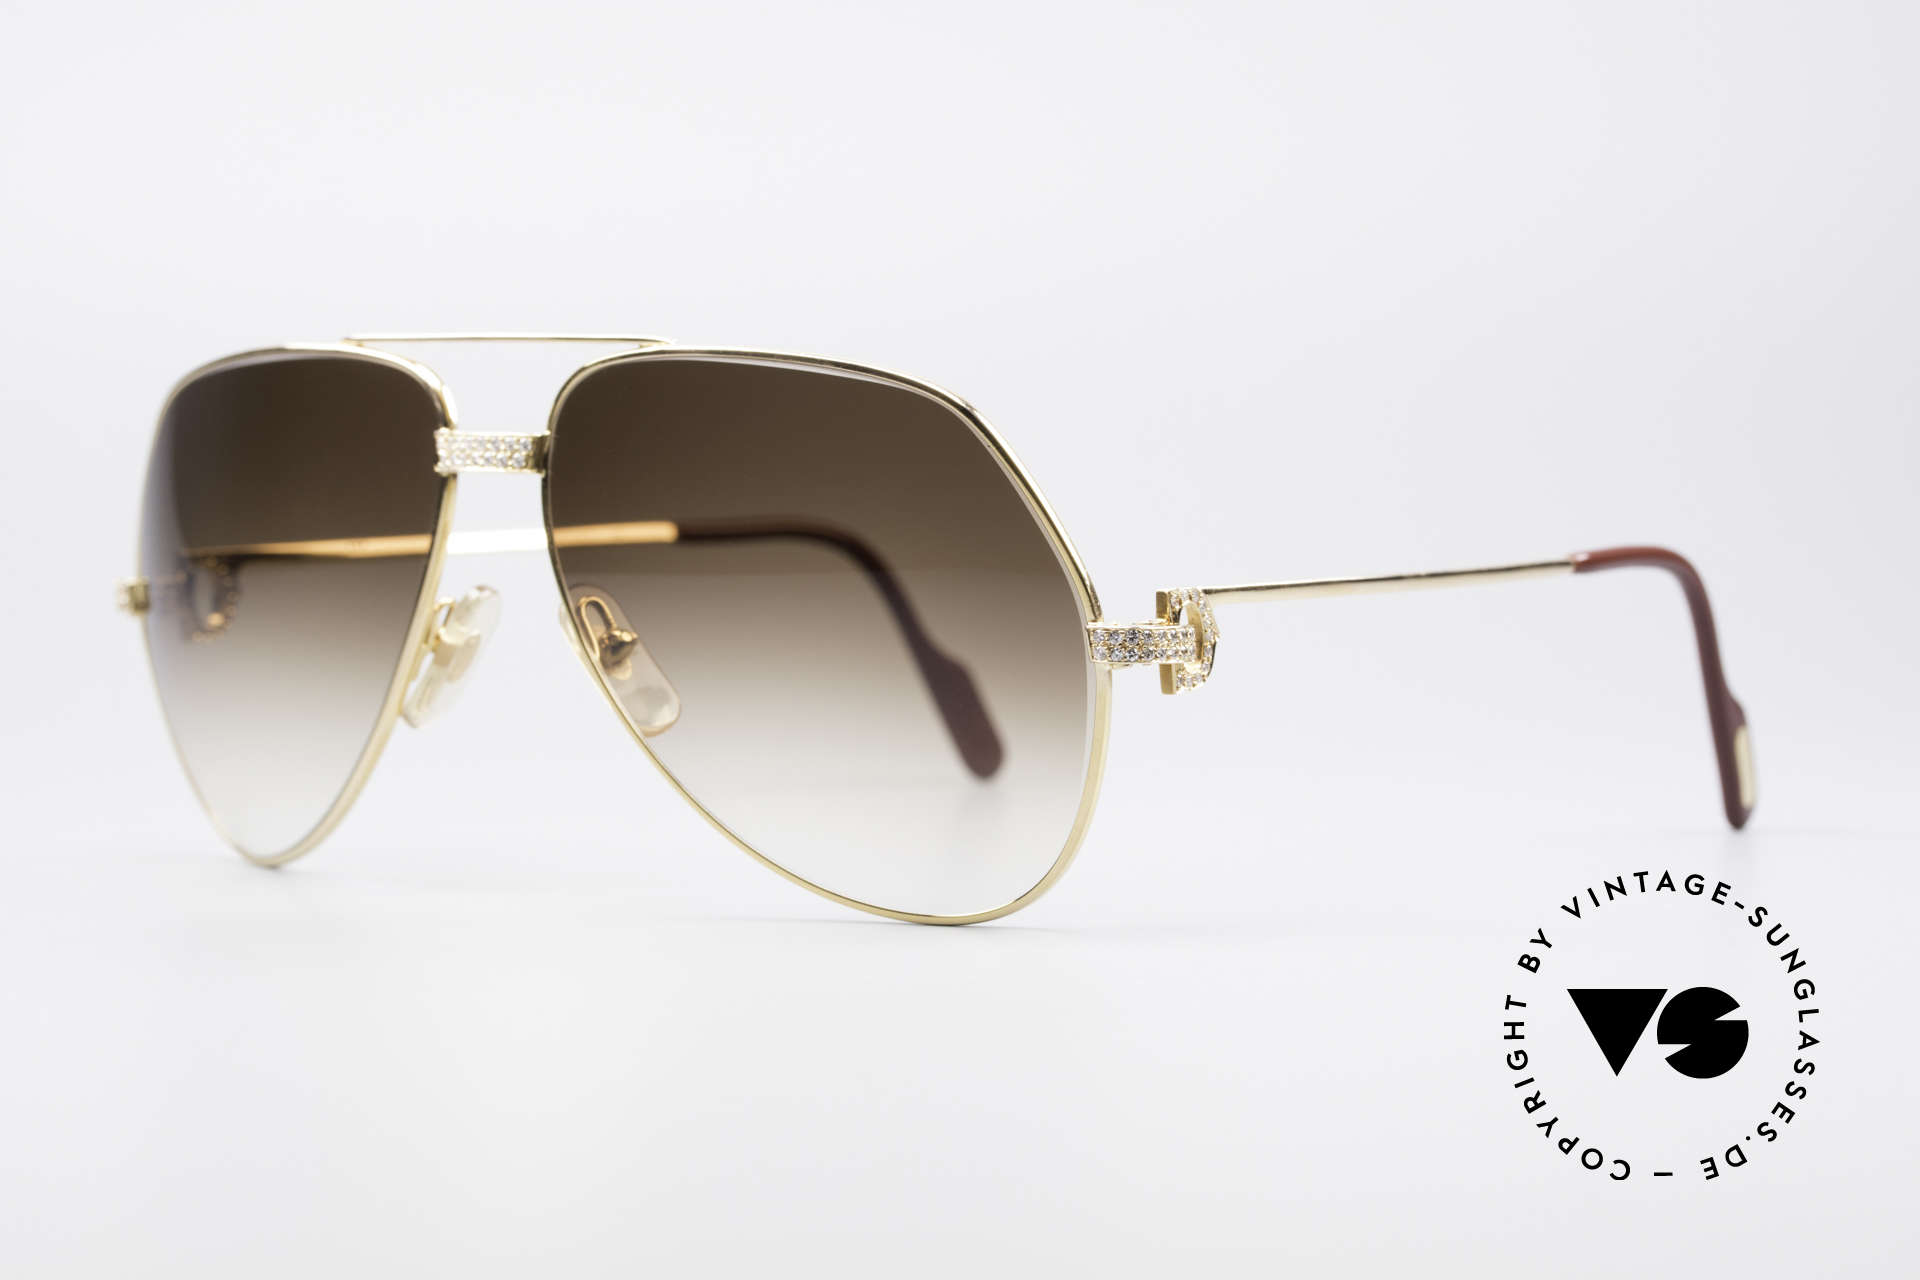 Cartier Grand Pavage Diamond Glasses, Grand Pavage was only made upon request & prepayment, Made for Men